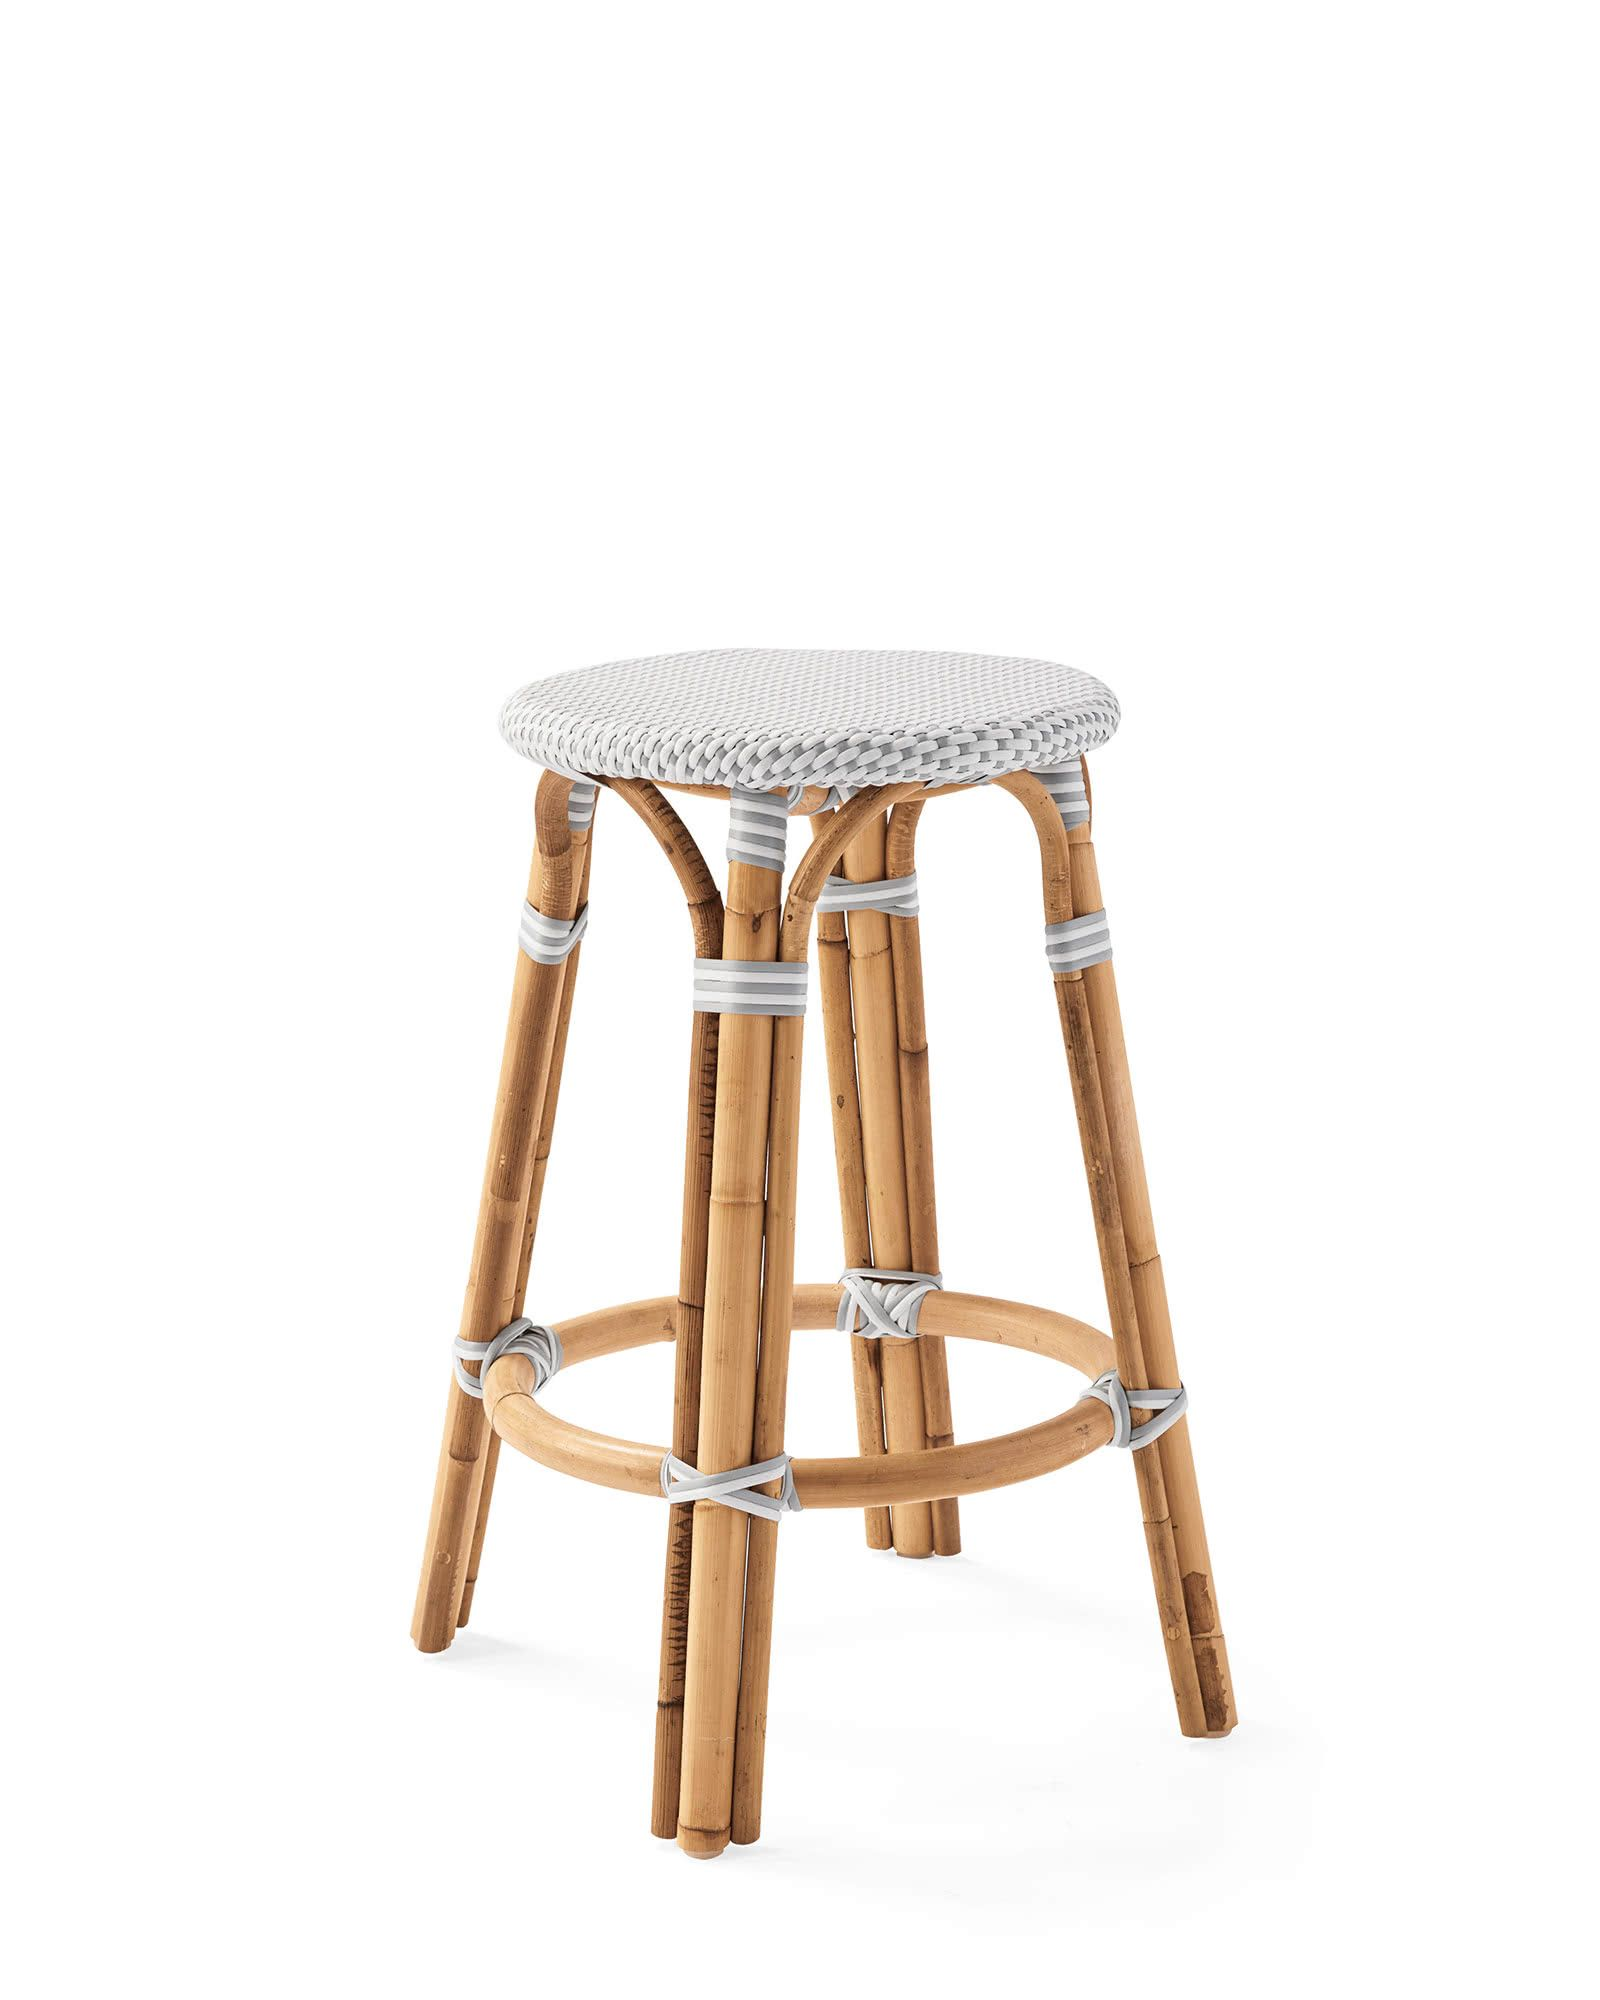 Riviera Backless Counter Stool In 2020 Counter Stools Backless Backless Stools Counter Stools